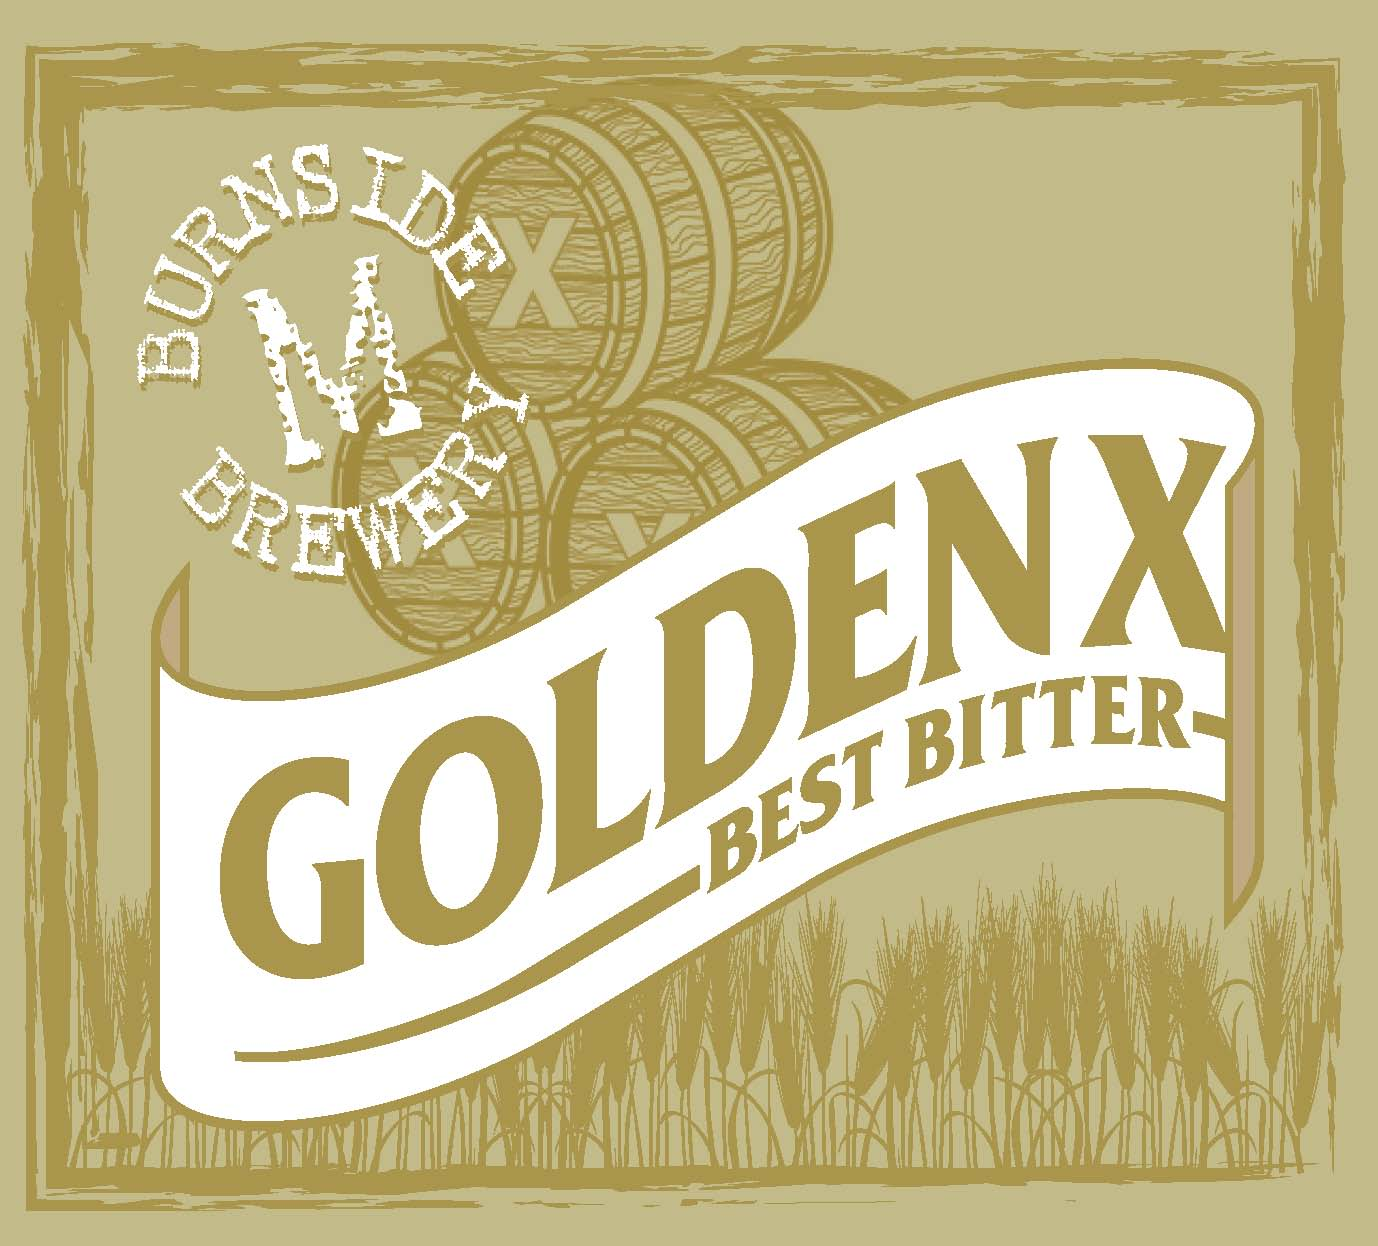 4. Golden X Best Bitter